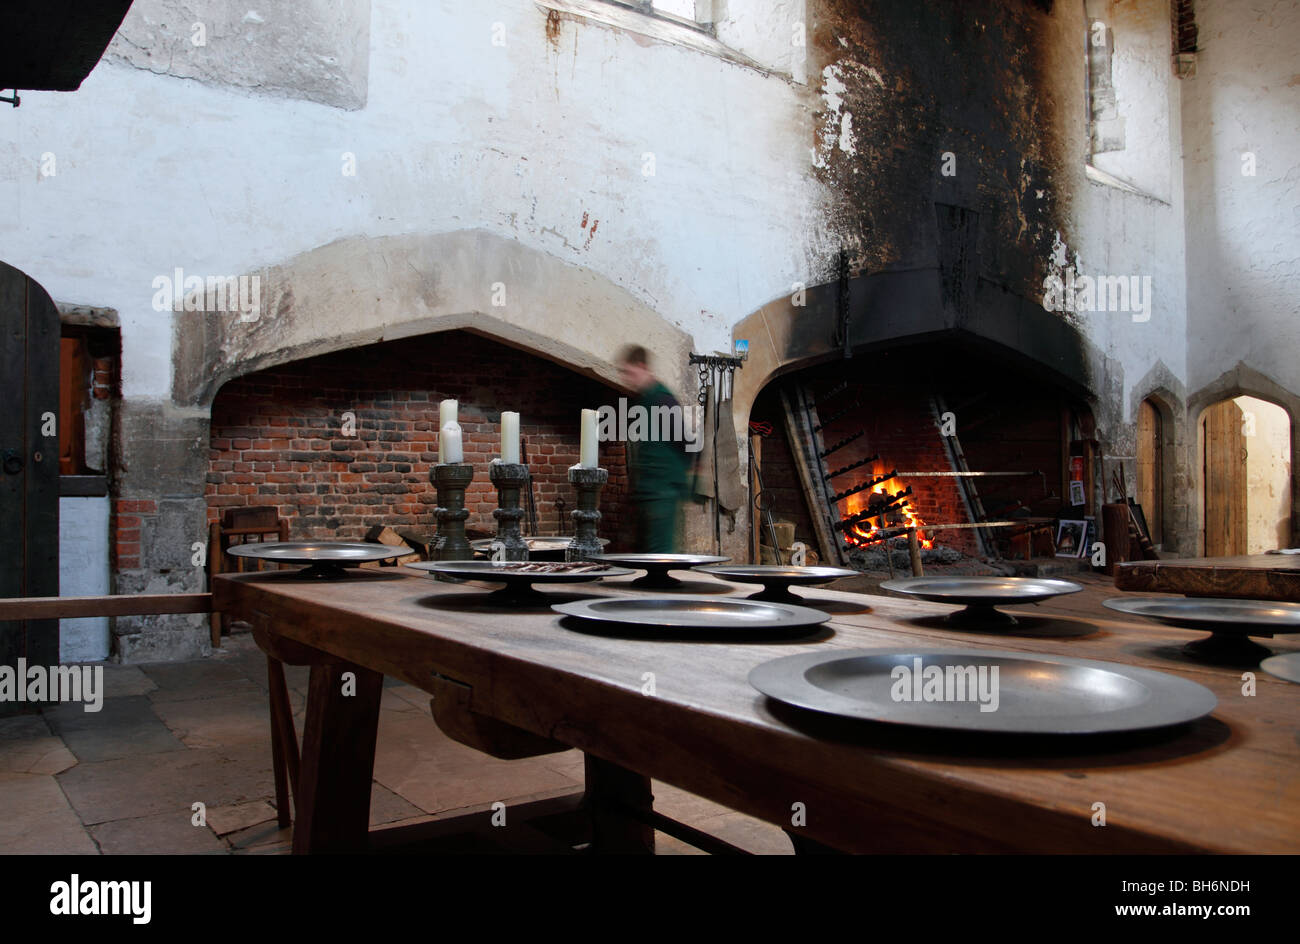 The roasting fire on the right of the great kitchens at Hampton Court Palace. Now divided into three large rooms. - Stock Image